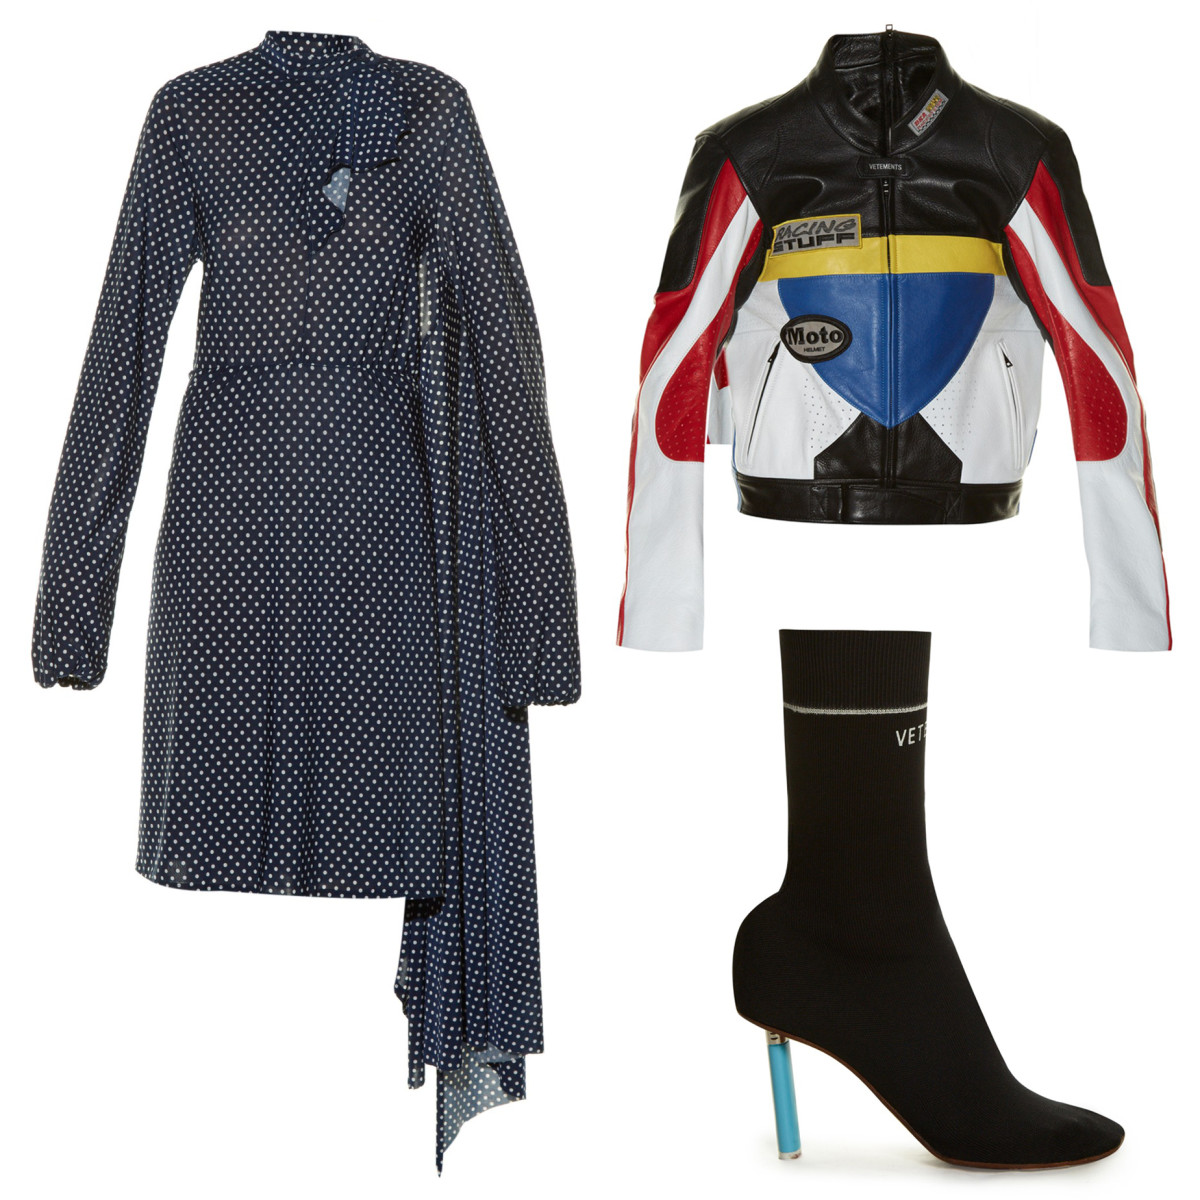 Clockwise from top left: Vetements open-back polka-dot print dress, $2,095, available at Net-a-Porter; Vetements colour-block leather biker jacket, $4,750, available at Net-a-Porter; Vetementssock ankle boots,$1,260, available at Net-a-Porter.